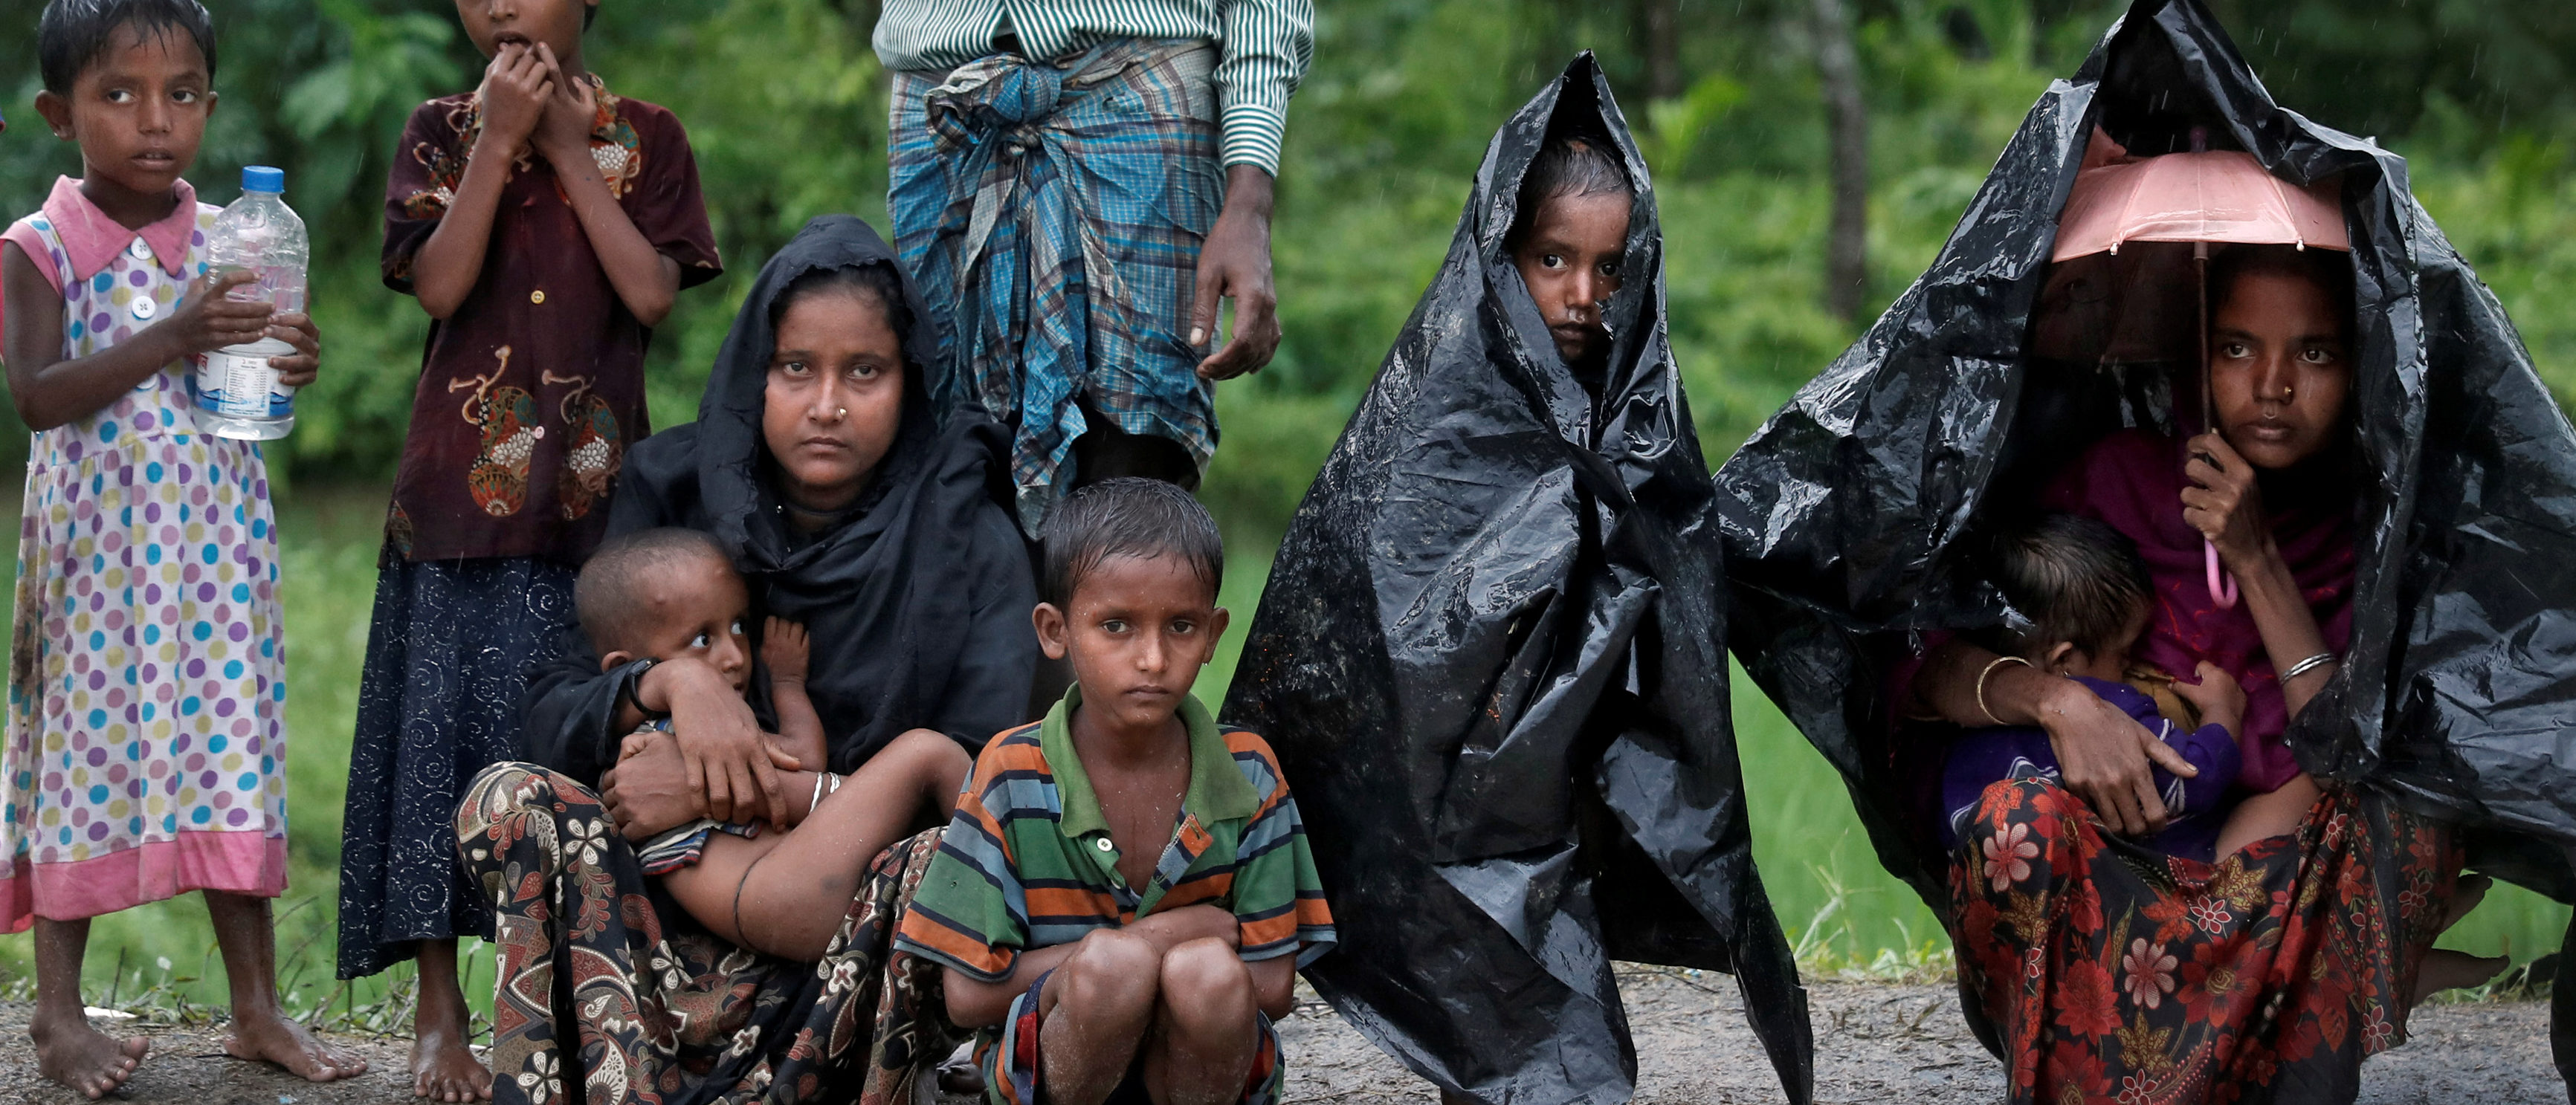 Rohingya refugees wait for aid in Cox's Bazar, Bangladesh, September 20, 2017. REUTERS/Cathal McNaughton - RC1B9FAA4560